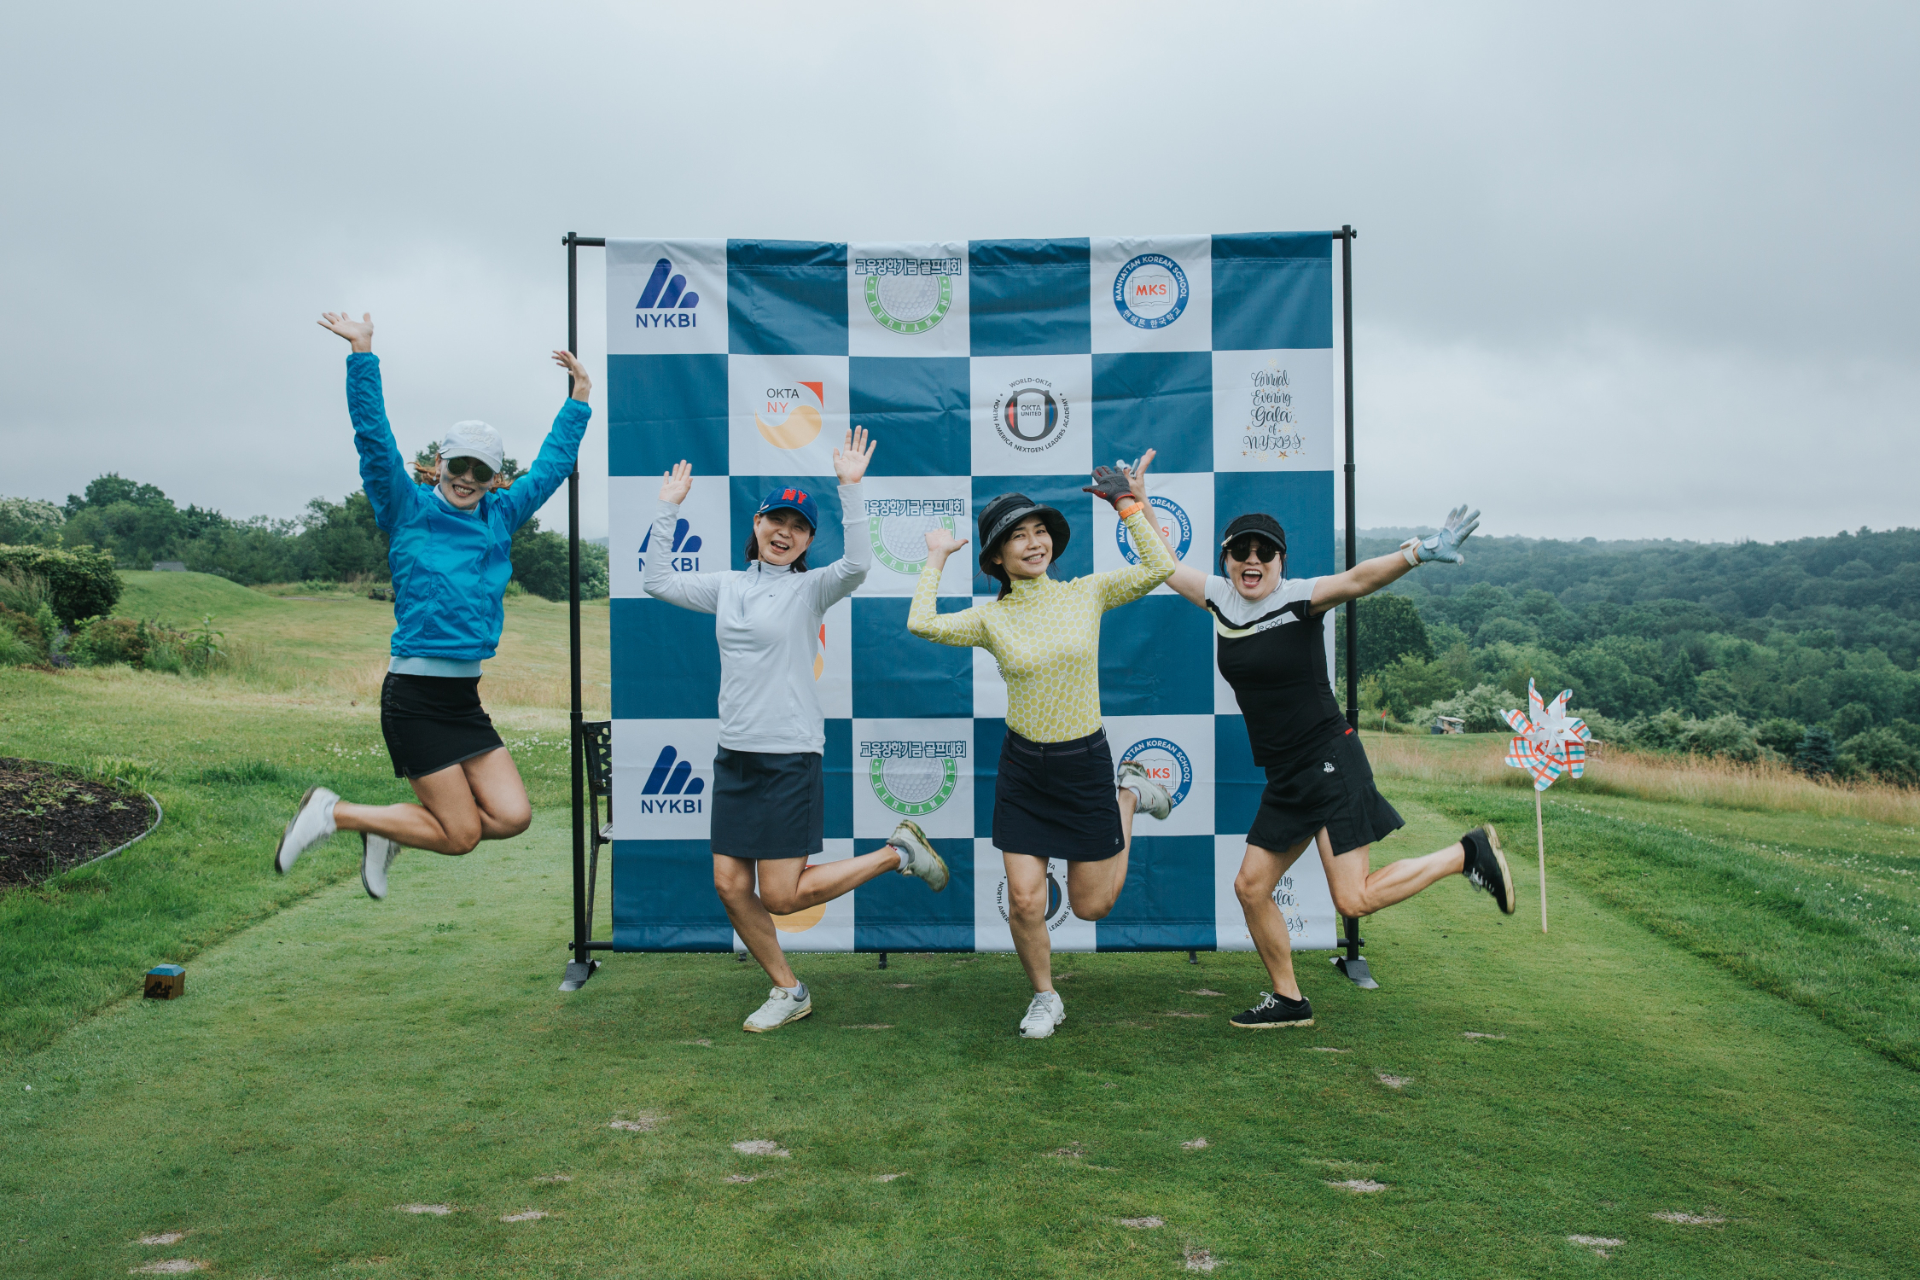 https://nykbi.com/new/wp-content/uploads/2019/07/190619-Scholarship-Fundraising-Golf-Tournament-027.jpg